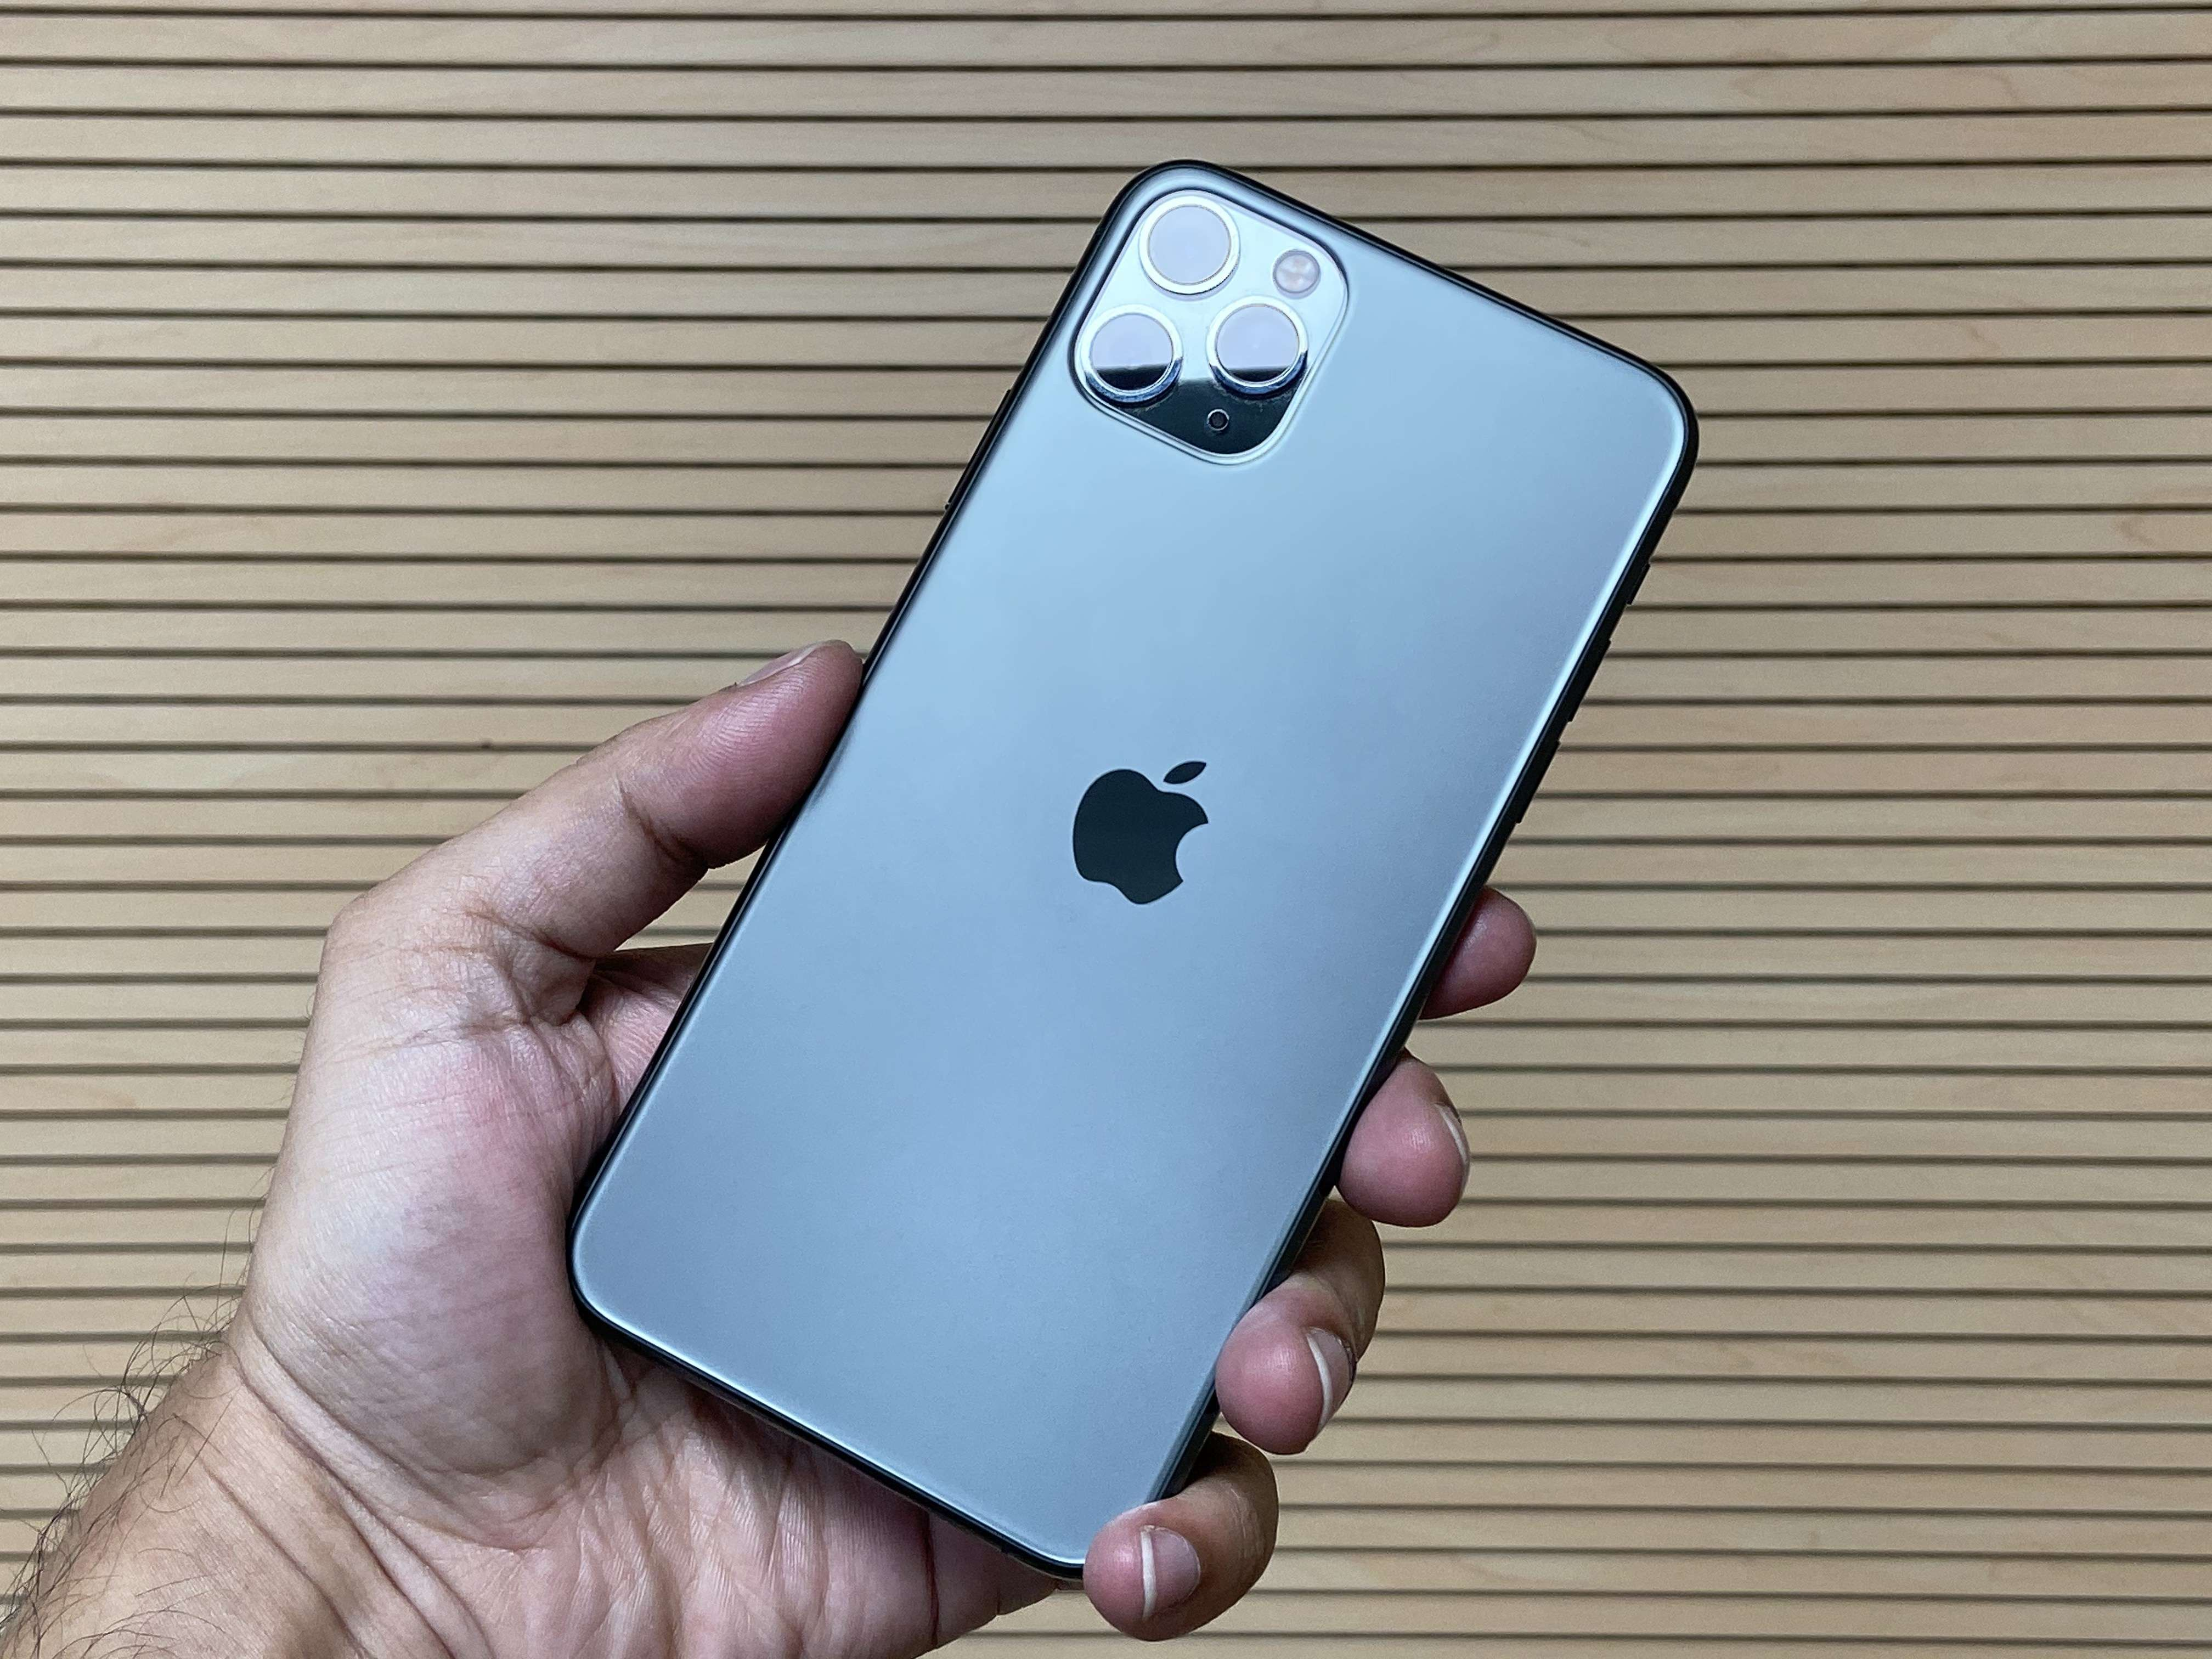 Apple iPhone 11 Pro Max - Price in India, Full Specifications & Features  (30th Jul 2020) at Gadgets Now